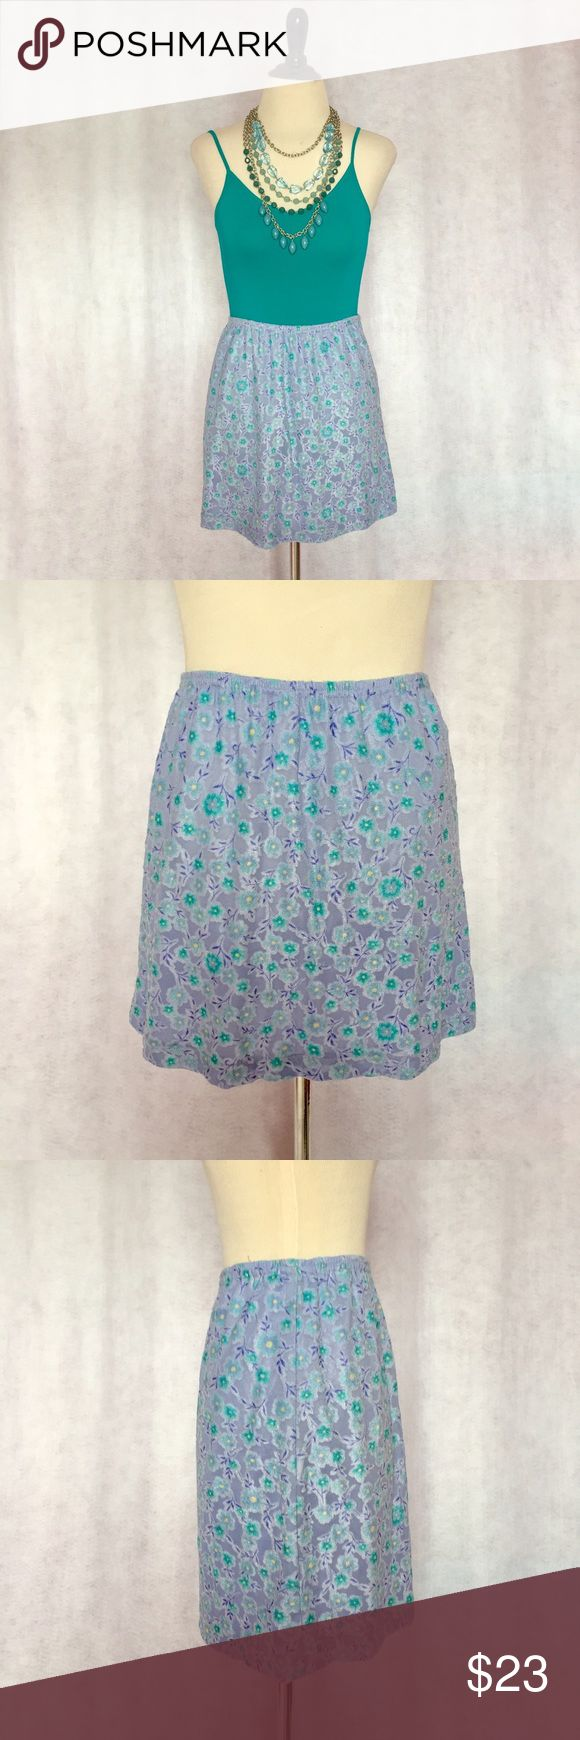 Vtg 90s XS S Blue Floral Daisy Burnout Mini Skirt This vintage skirt is perfect for Easter! Features fully elastic waist, aline style, and mini length. Skirt has all over turquoise fuzzy floral burnout pattern against a cornflower blue background. Fully lined. Listing is for skirt only  Brand: Express Material: Shell- 75% Rayon/25% Polyester; Lining- 100% Nylon Size: S (Fits like an XS/S) Waist: 24-34 Hips: 36-46 Length: 14.5   #spring #summer #pastel #daisy #90s #vtg #preppy #trendy…